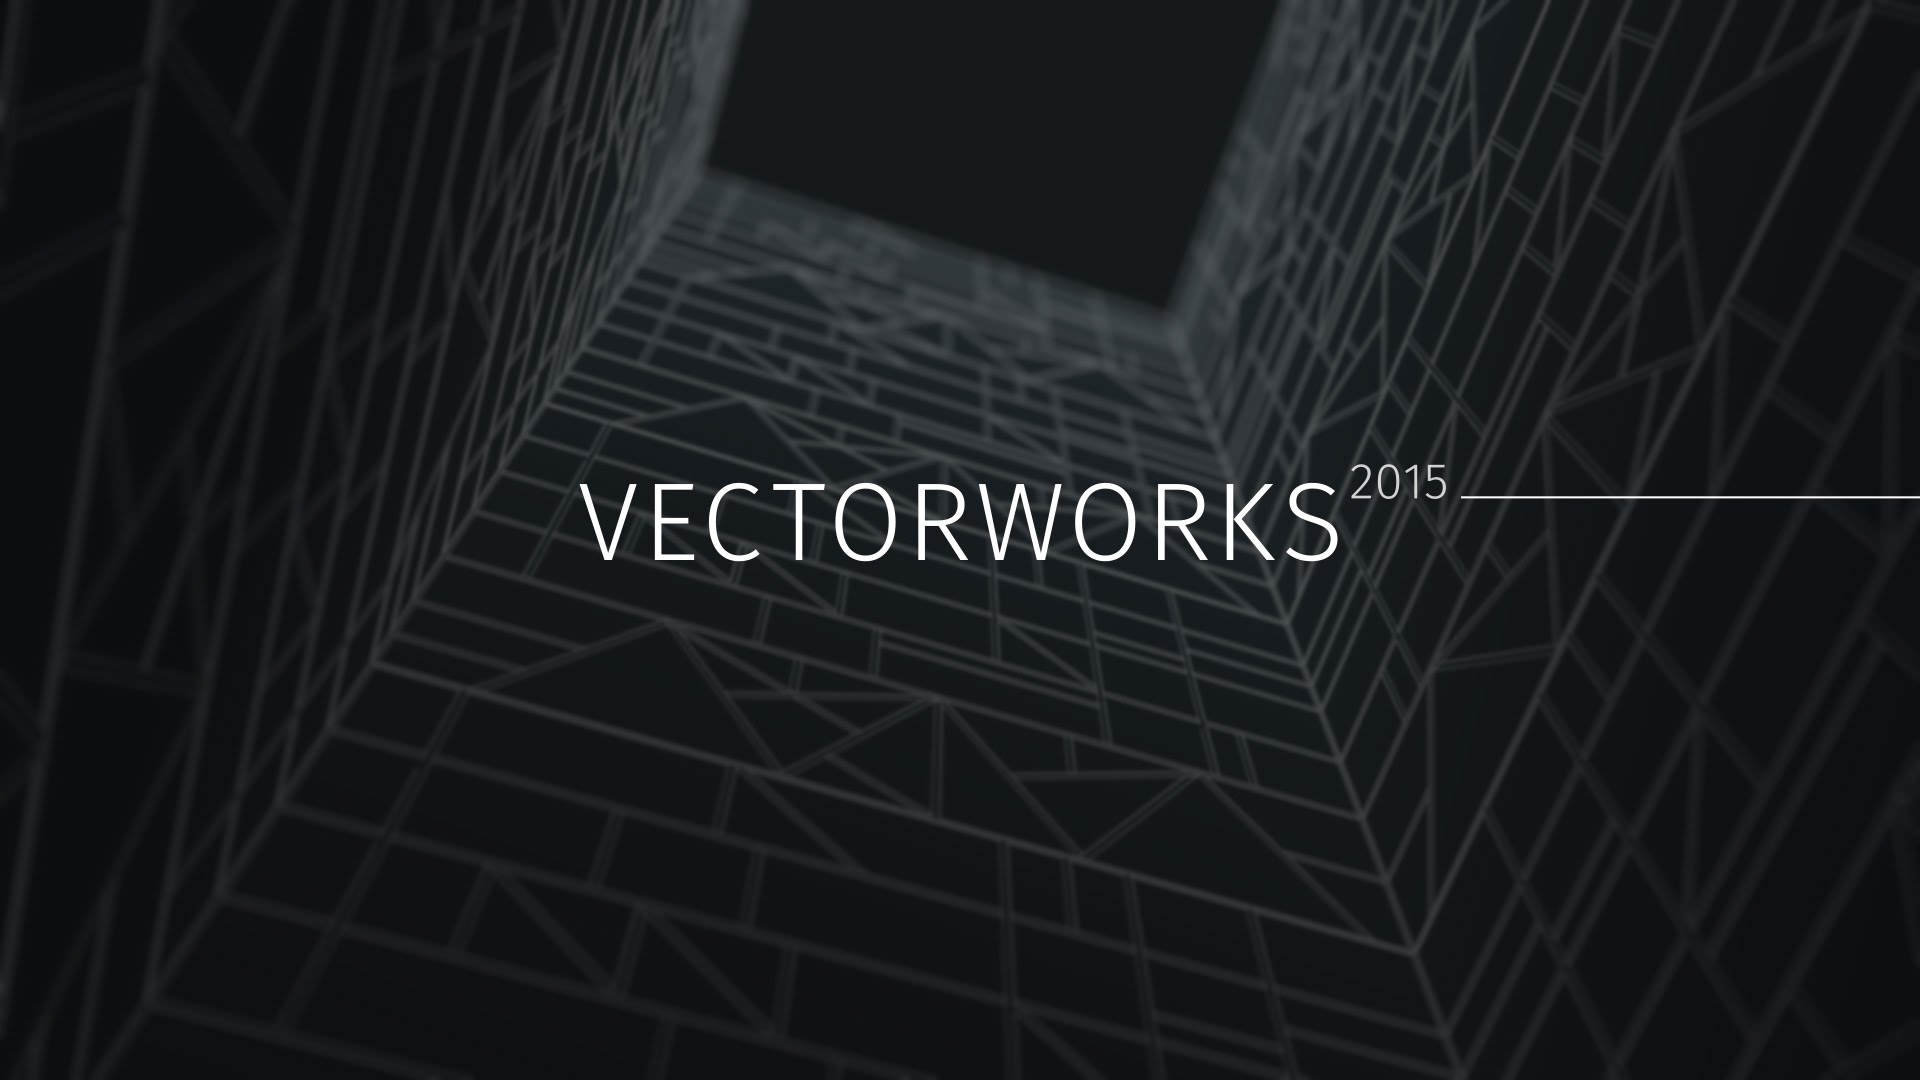 Nemetschek Vectorworks video